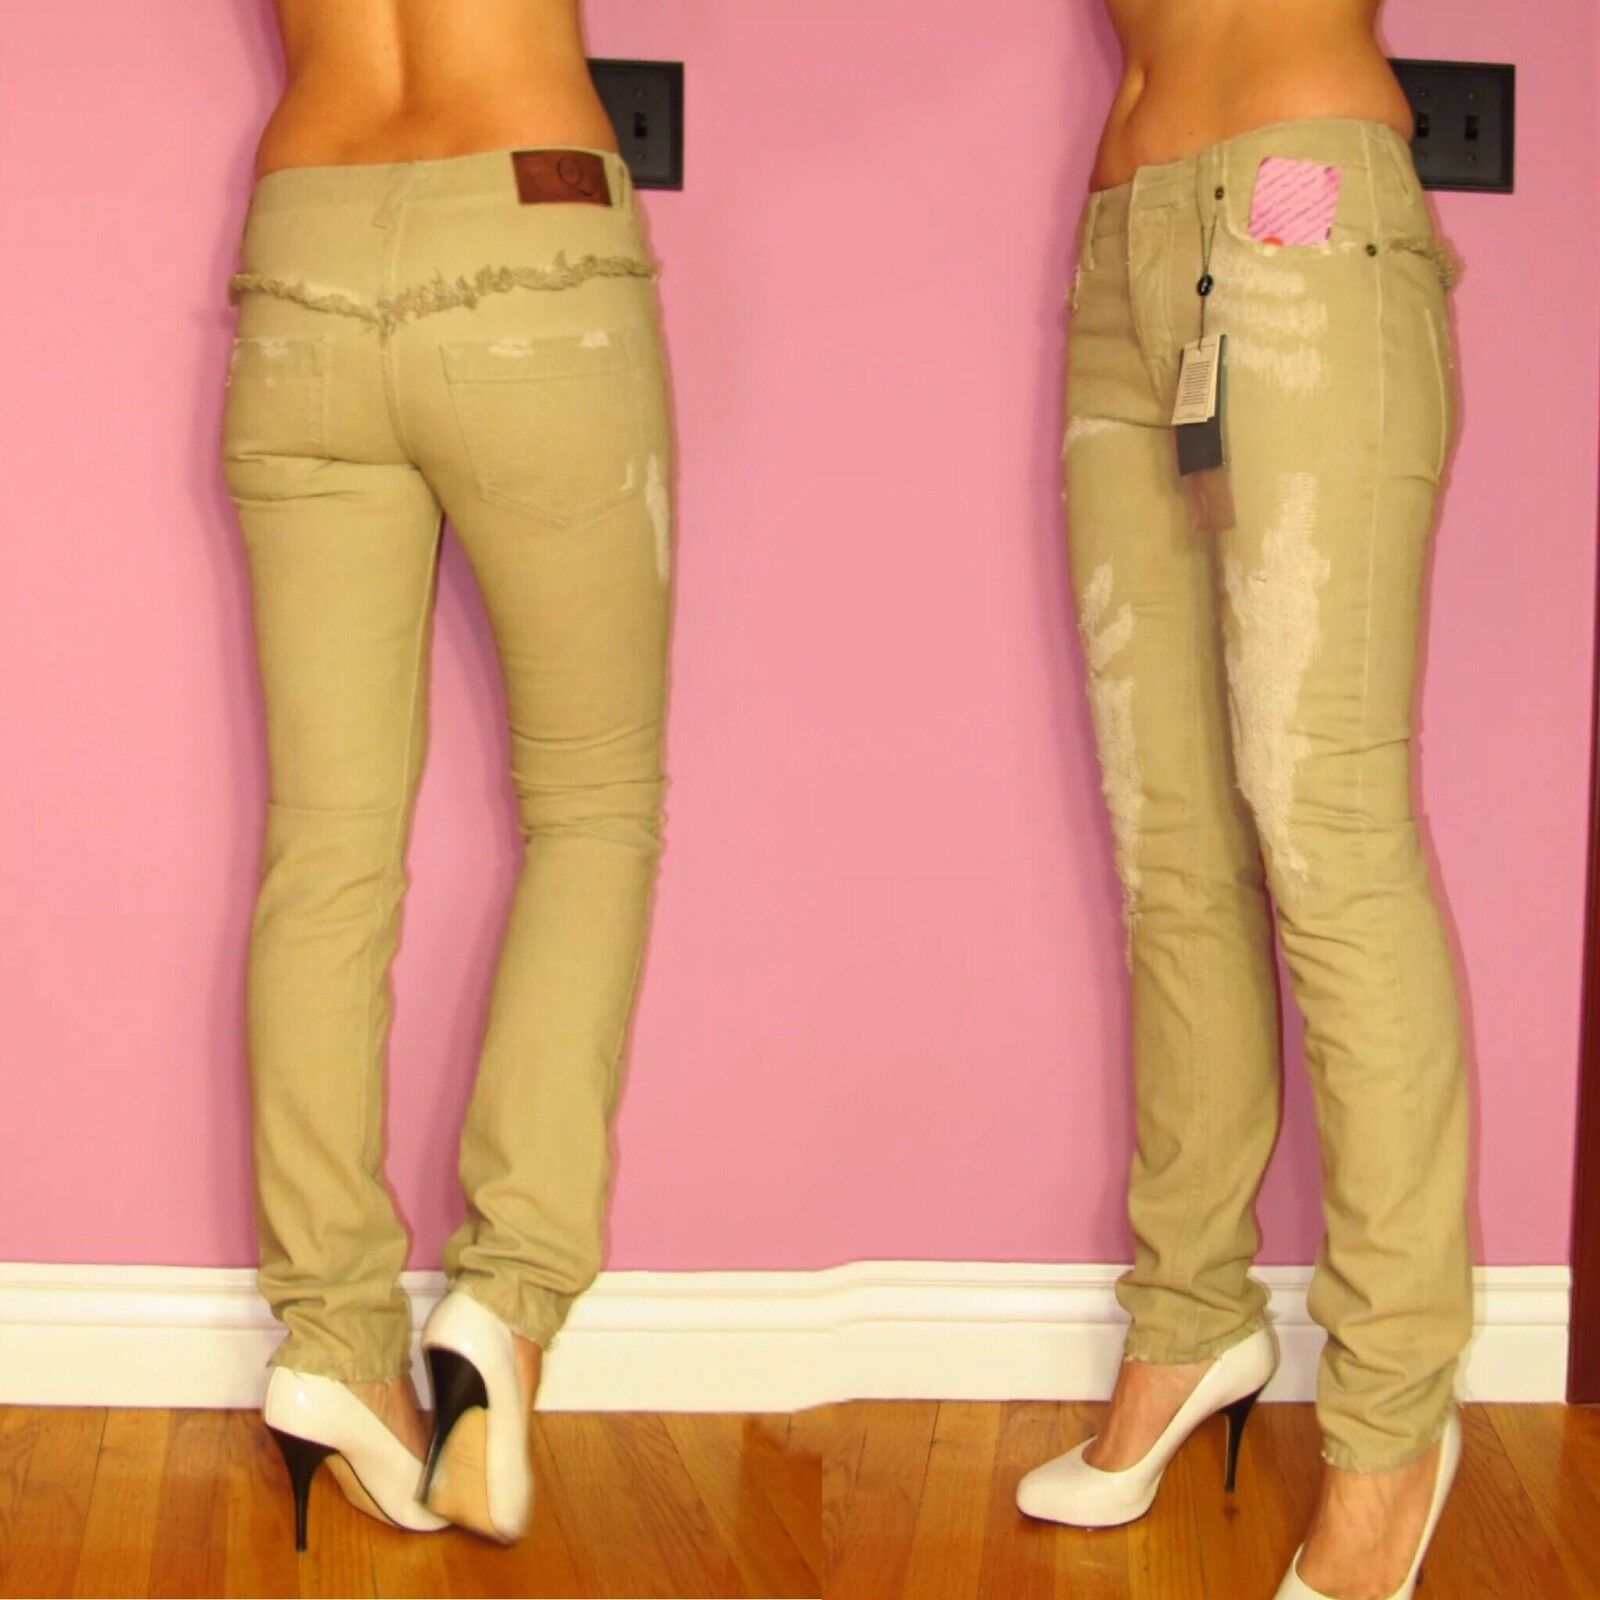 Alexander McQueen  Beige Sand Distressed Skinny Mid-Rise Jeans 26 US 4